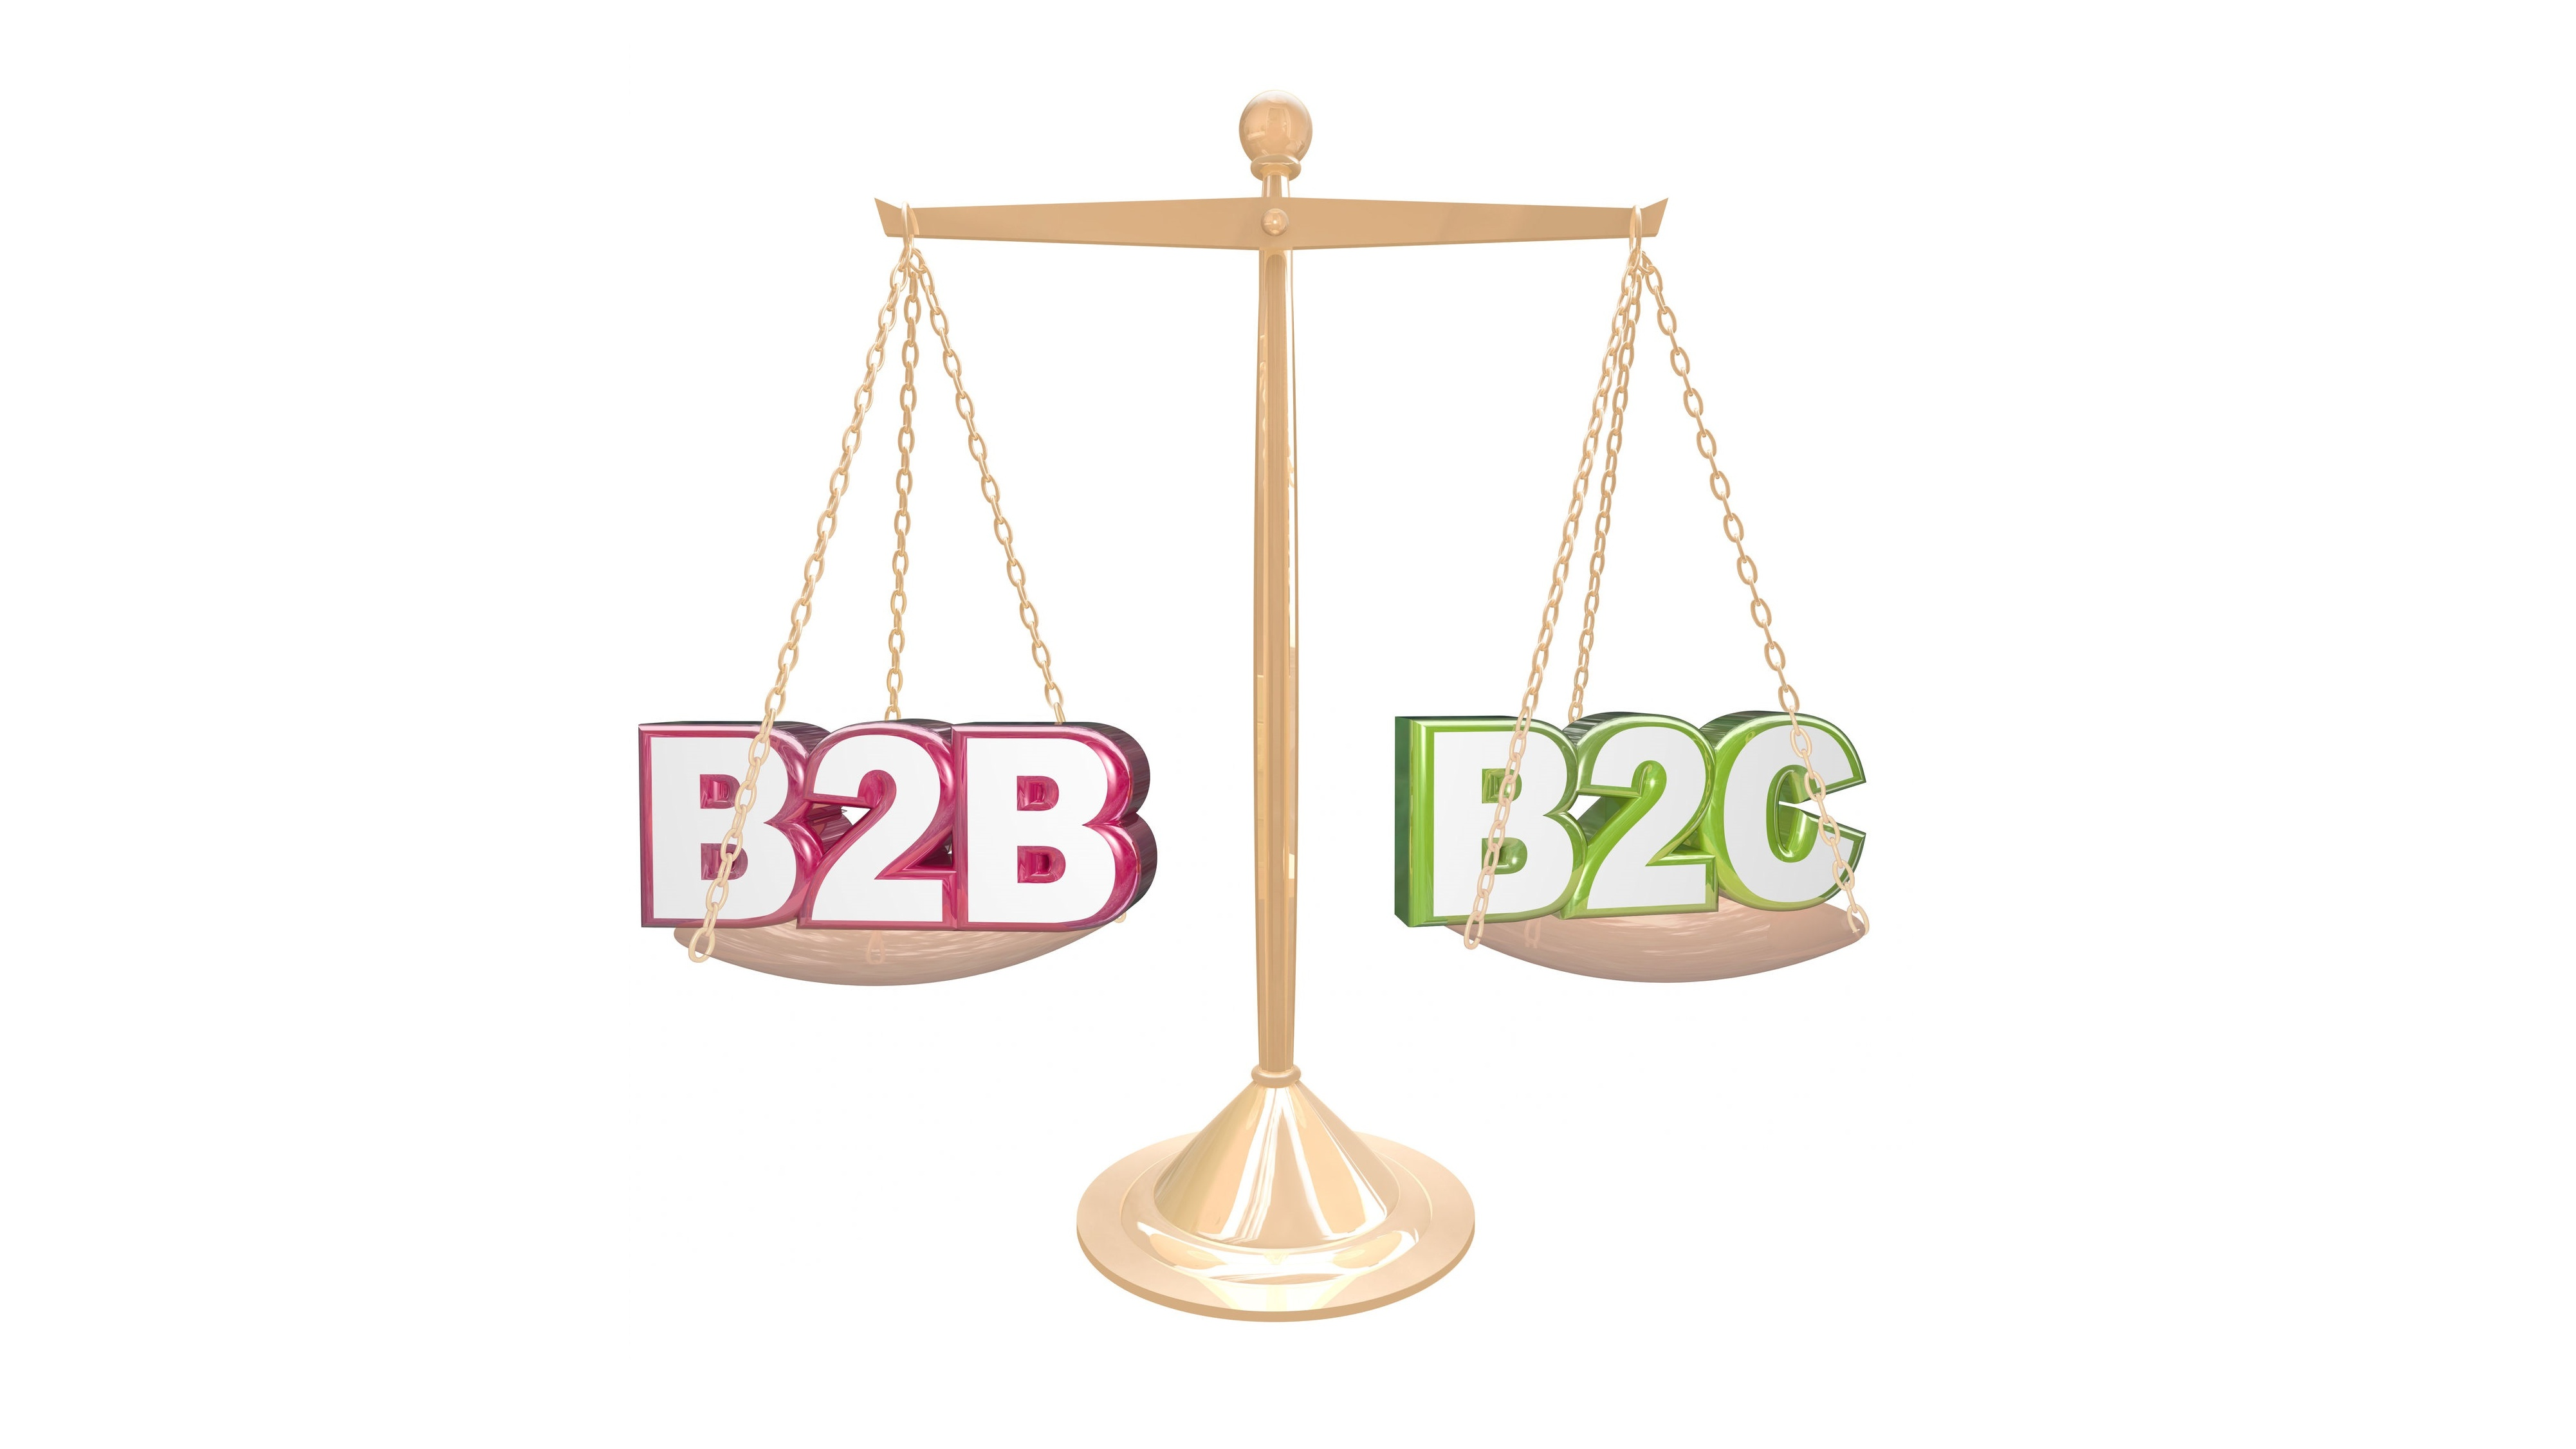 Consumerization in b2b-commerce?